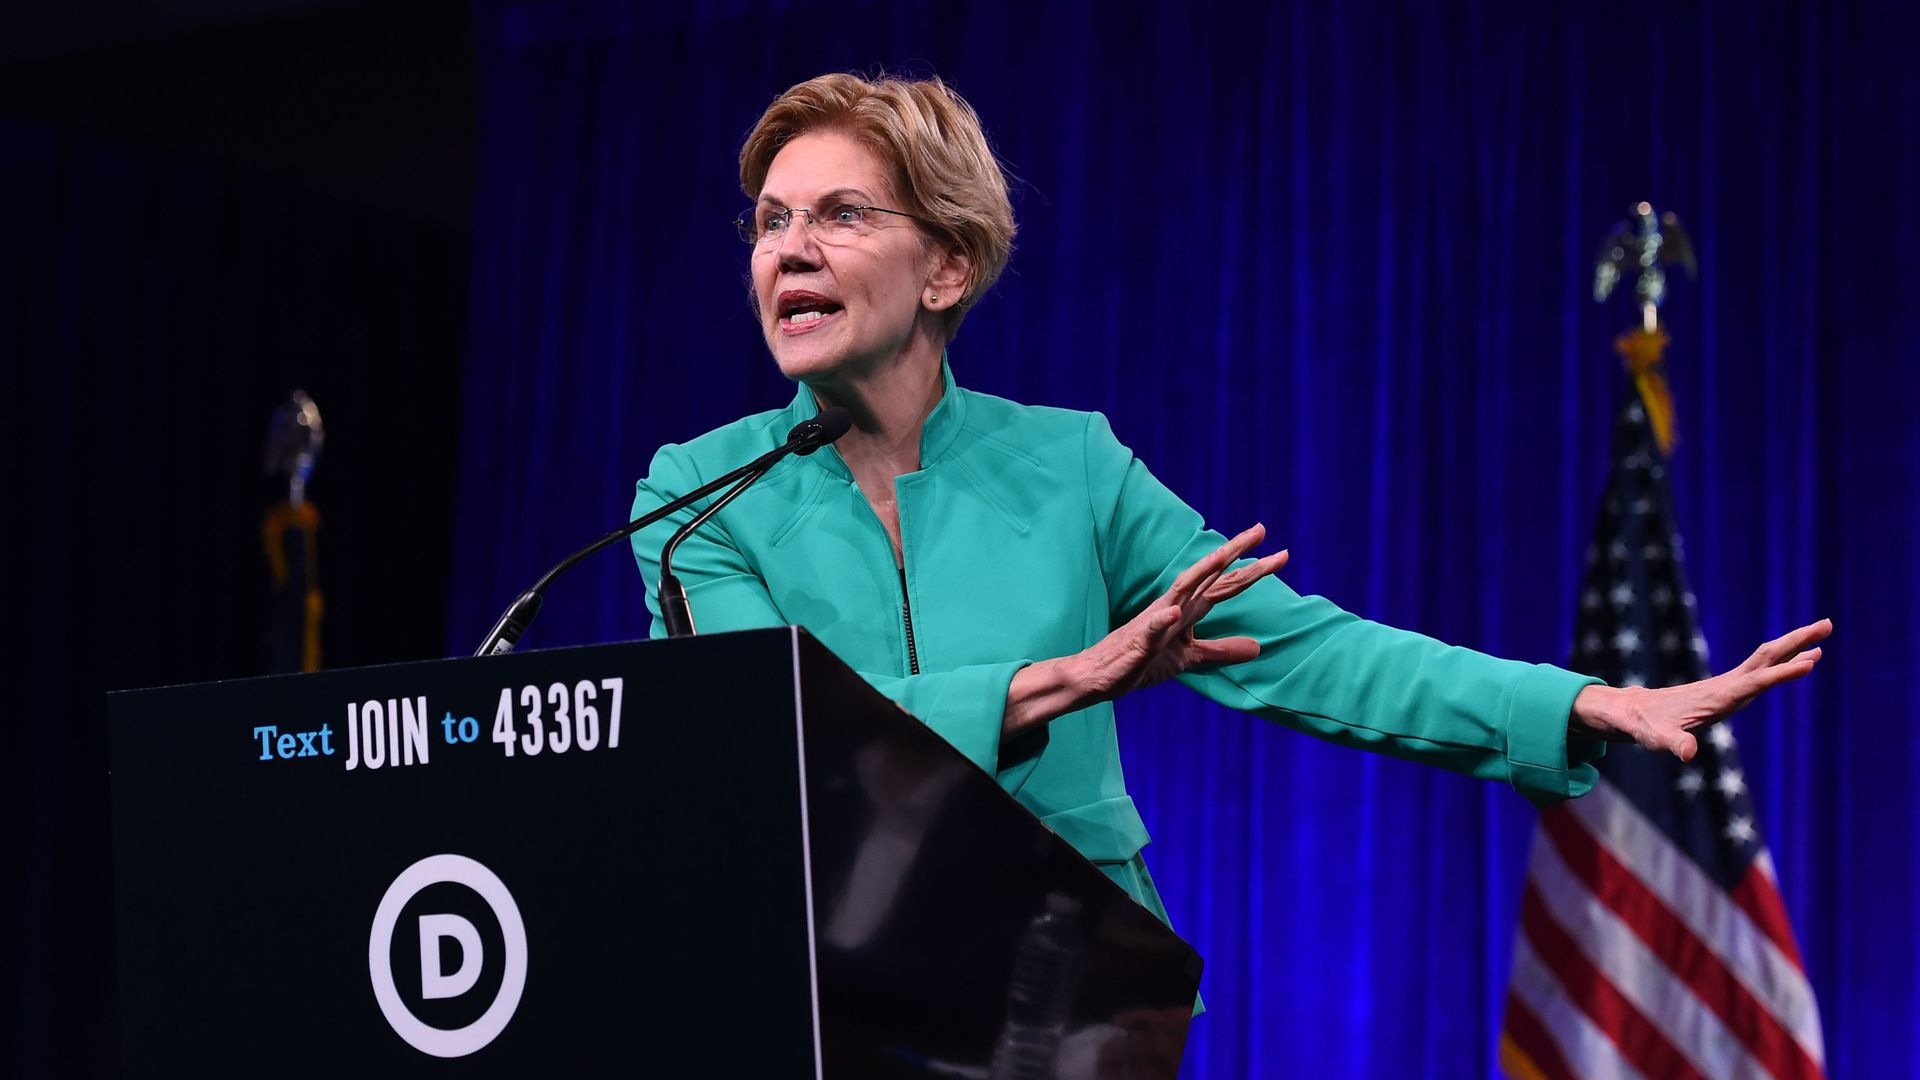 Democratic Presidential hopeful US Senator from Massachusetts Elizabeth Warren speaks on-stage during the Democratic National Committee's summer meeting in San Francisco